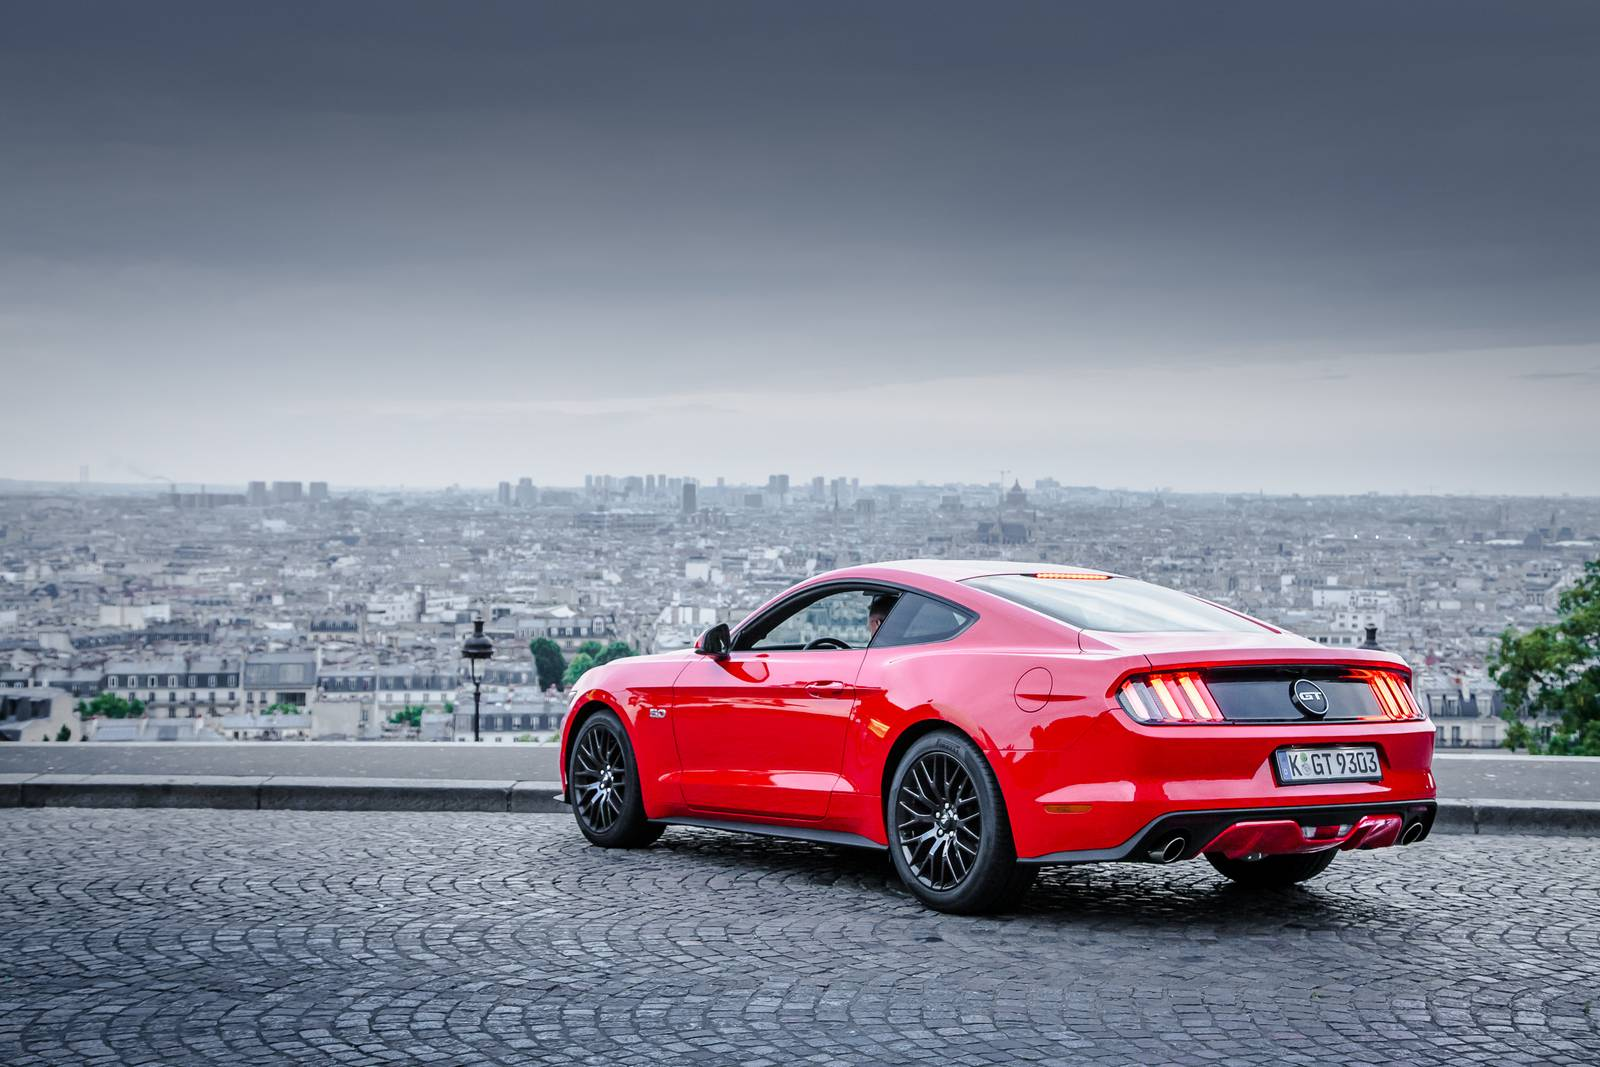 Ford Mustang Was Best Selling Sports Car In Germany In